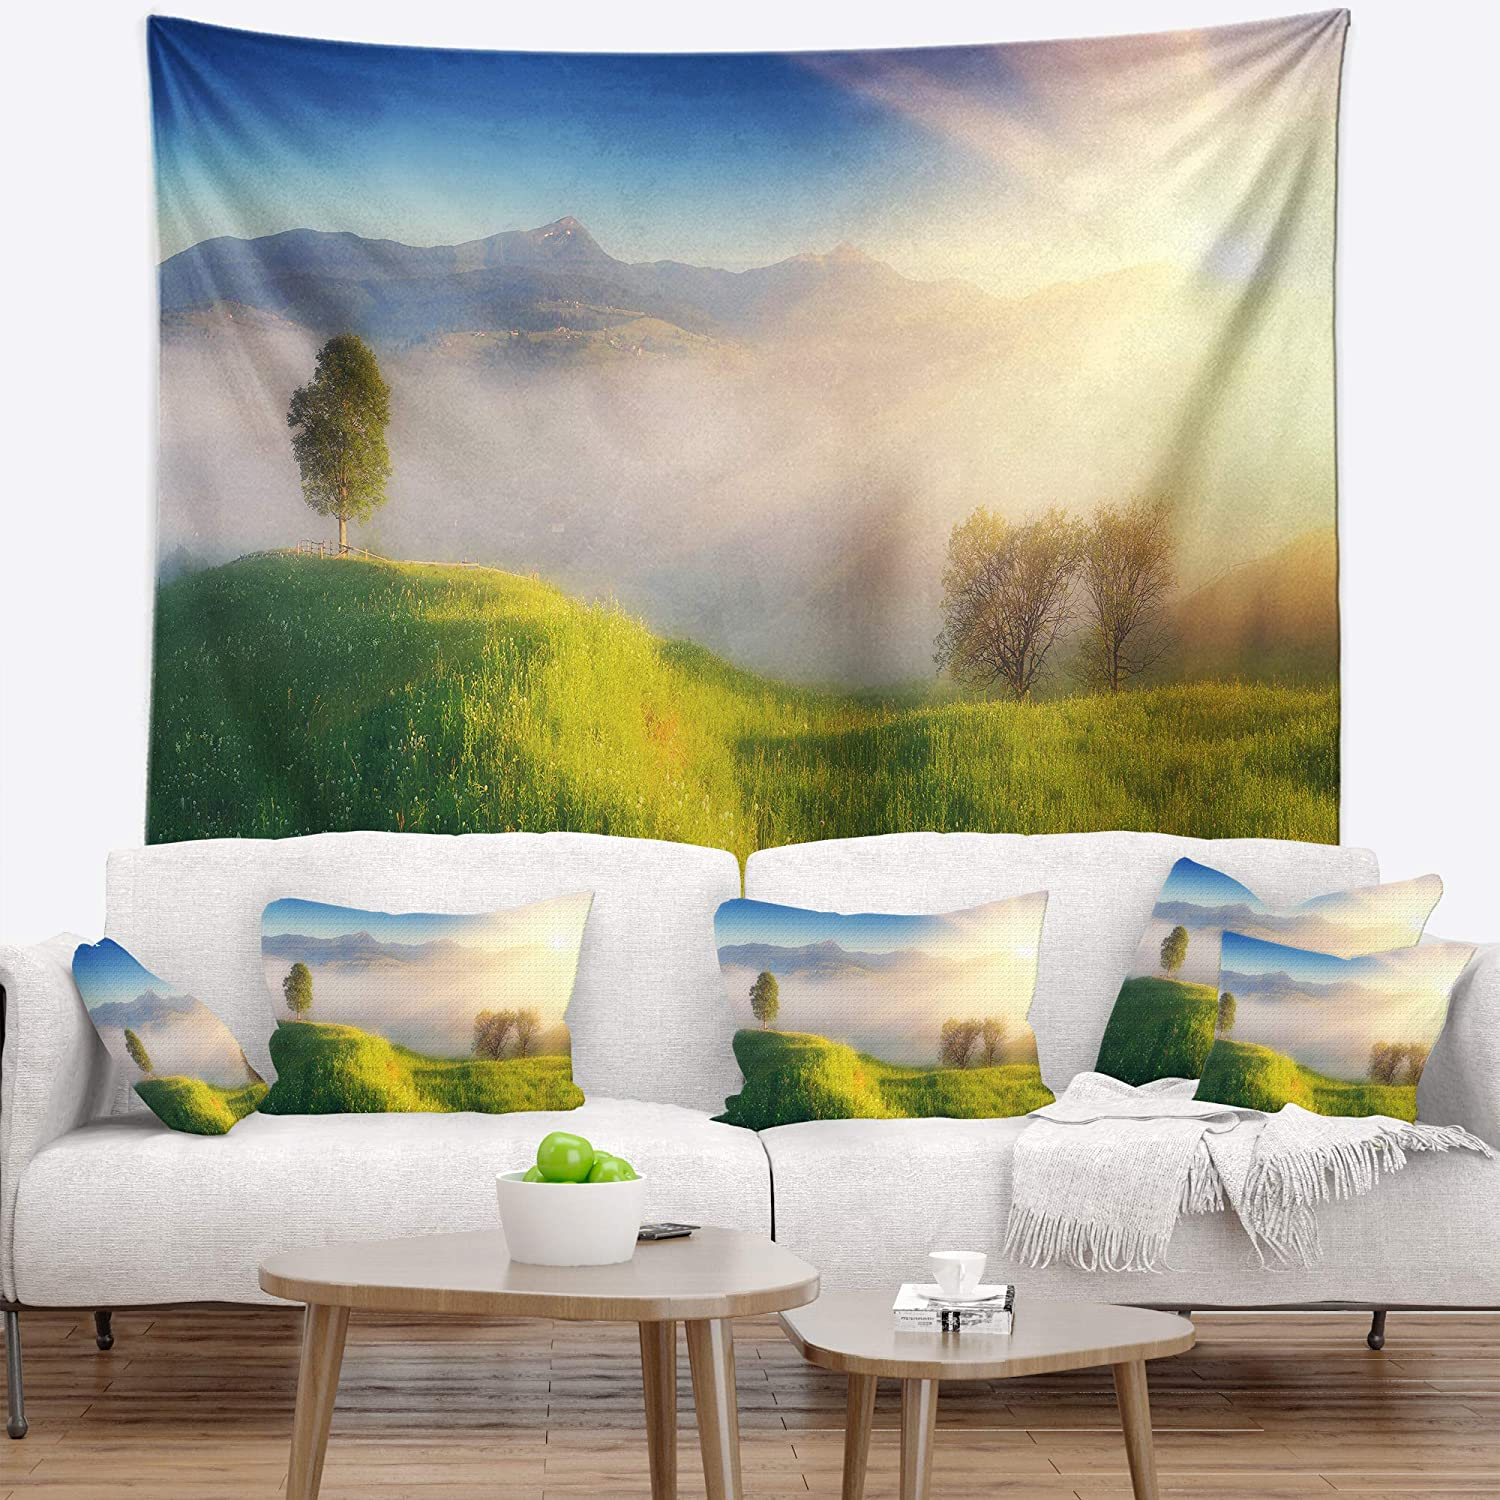 X 32 In Designart Tap14312 39 32 Morning Mist Over Mountain Village Landscape Blanket Décor Art For Home And Office Wall Tapestry Medium Created On Lightweight Polyester Fabric 39 In Home Kitchen Tapestries